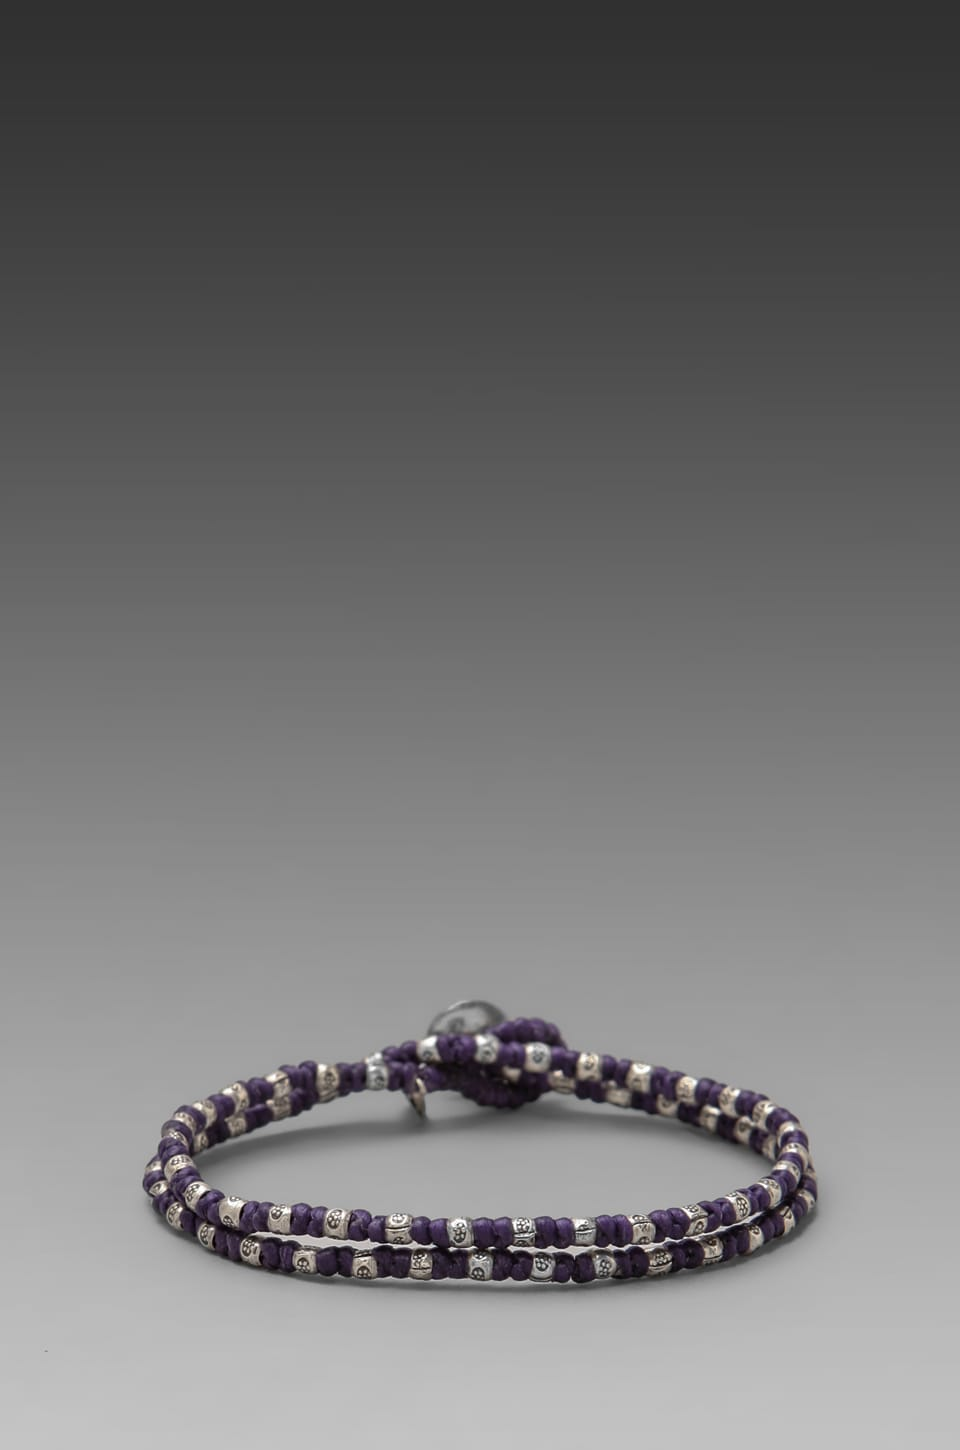 M.Cohen 2 Wrap Sterling Sliver Bracelet in Purple